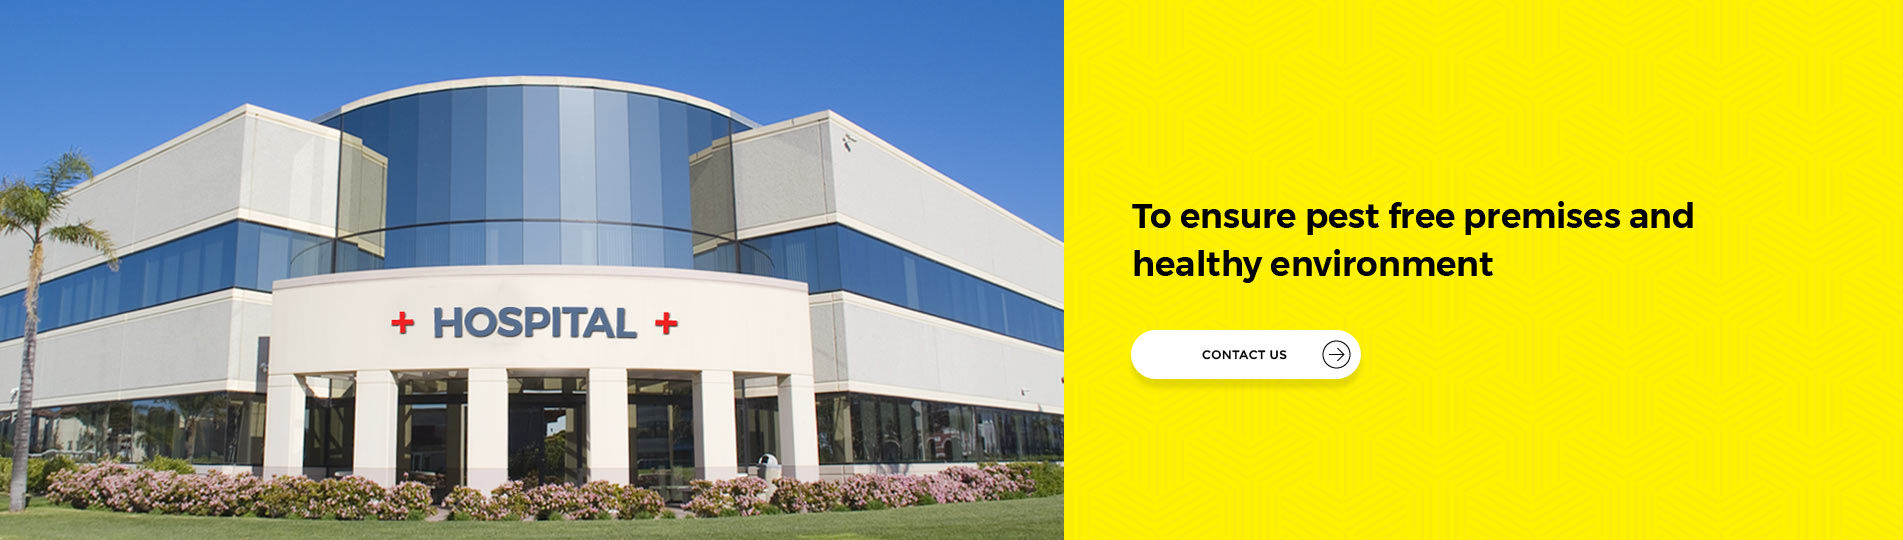 Best Pest Control Management Services for Hospitals and Clinics